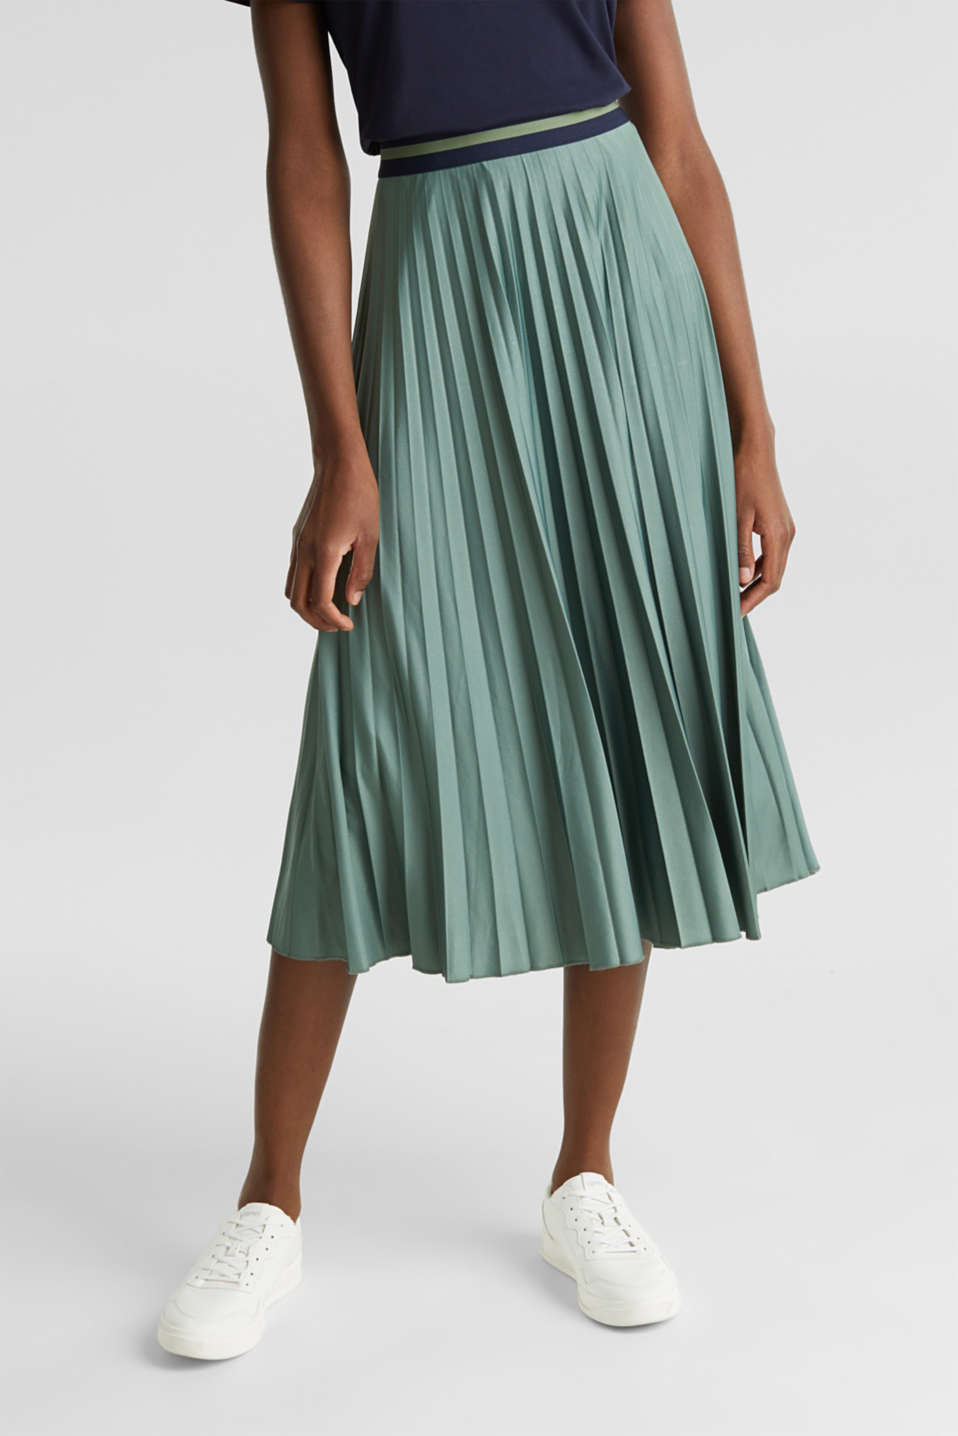 Stretch jersey skirt with accordion pleats, KHAKI GREEN, detail image number 6